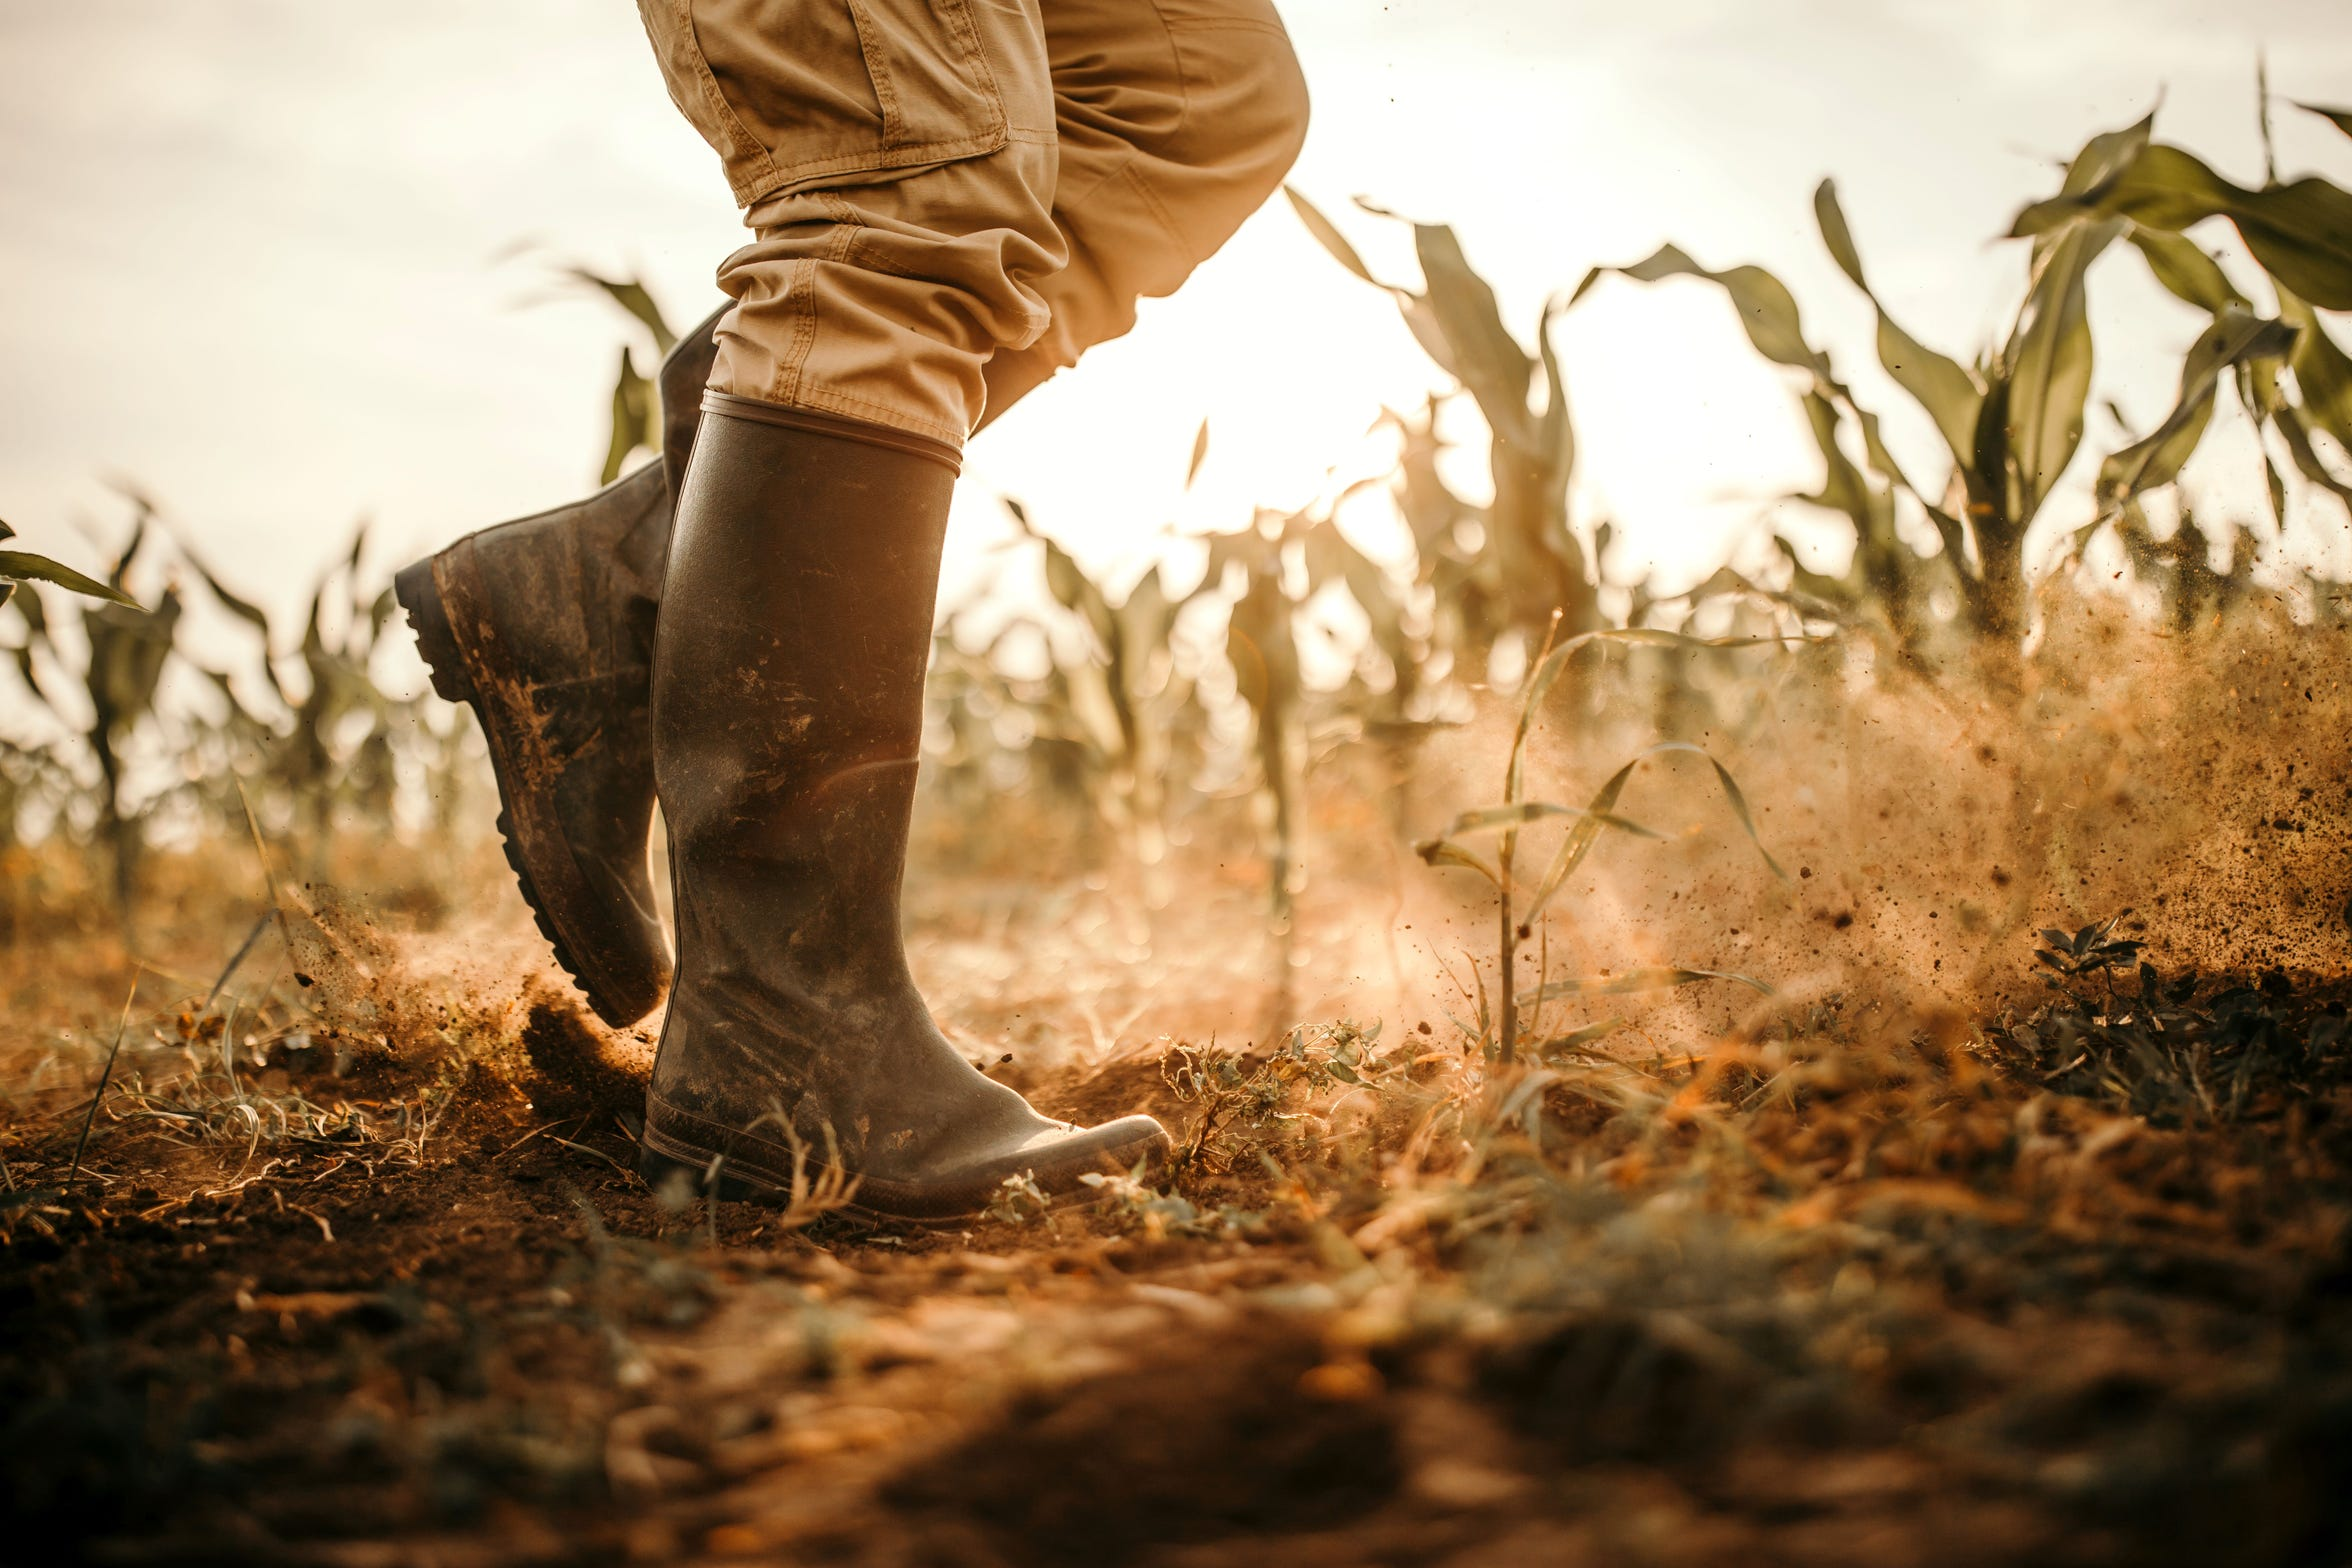 Agricultural workers face higher risks from heat exposure.